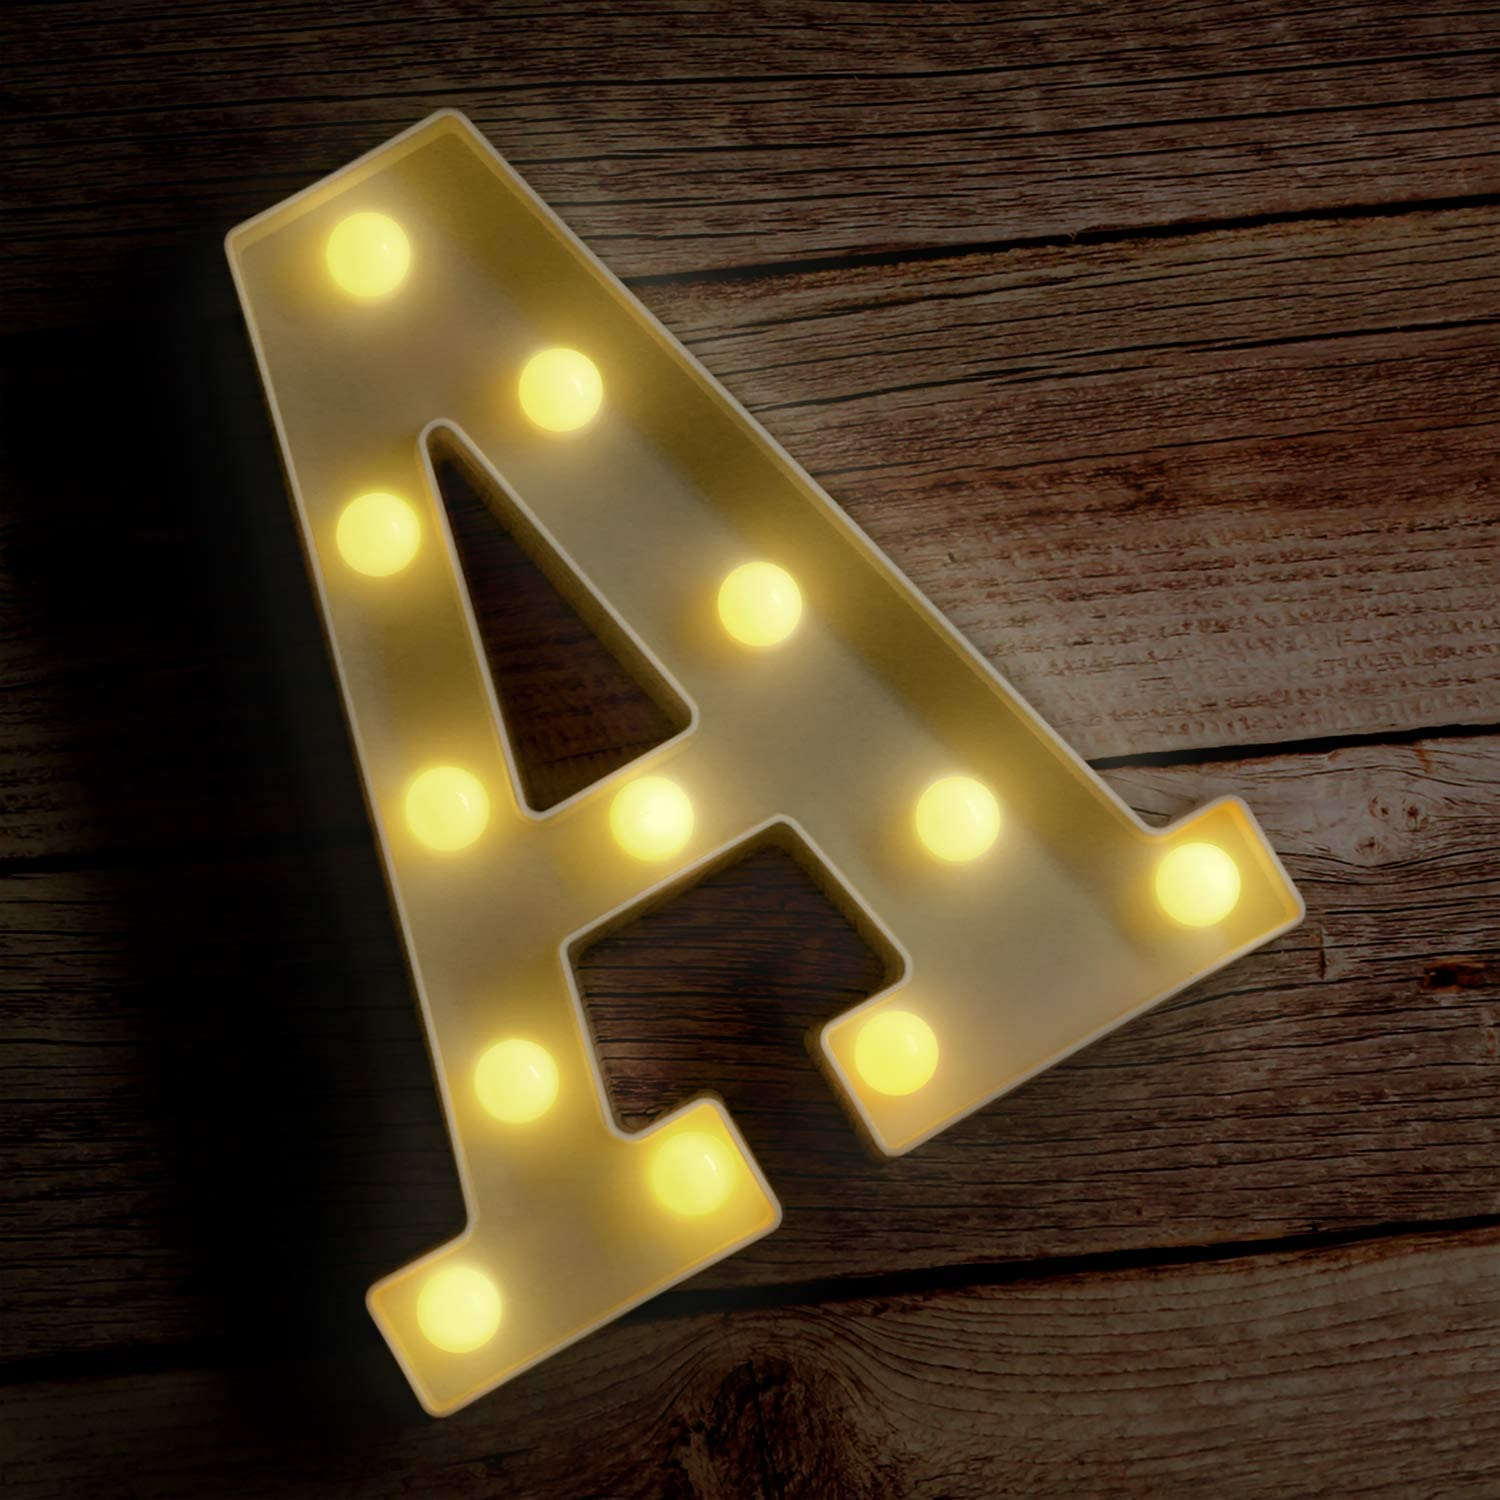 Novelty Place Alphabet Light - Marquee Letters Sign with Shining Bulbs, Standing Night Lamp for Wedding Home Party Bar Décor - Battery Powered, Warm White (Letter A)